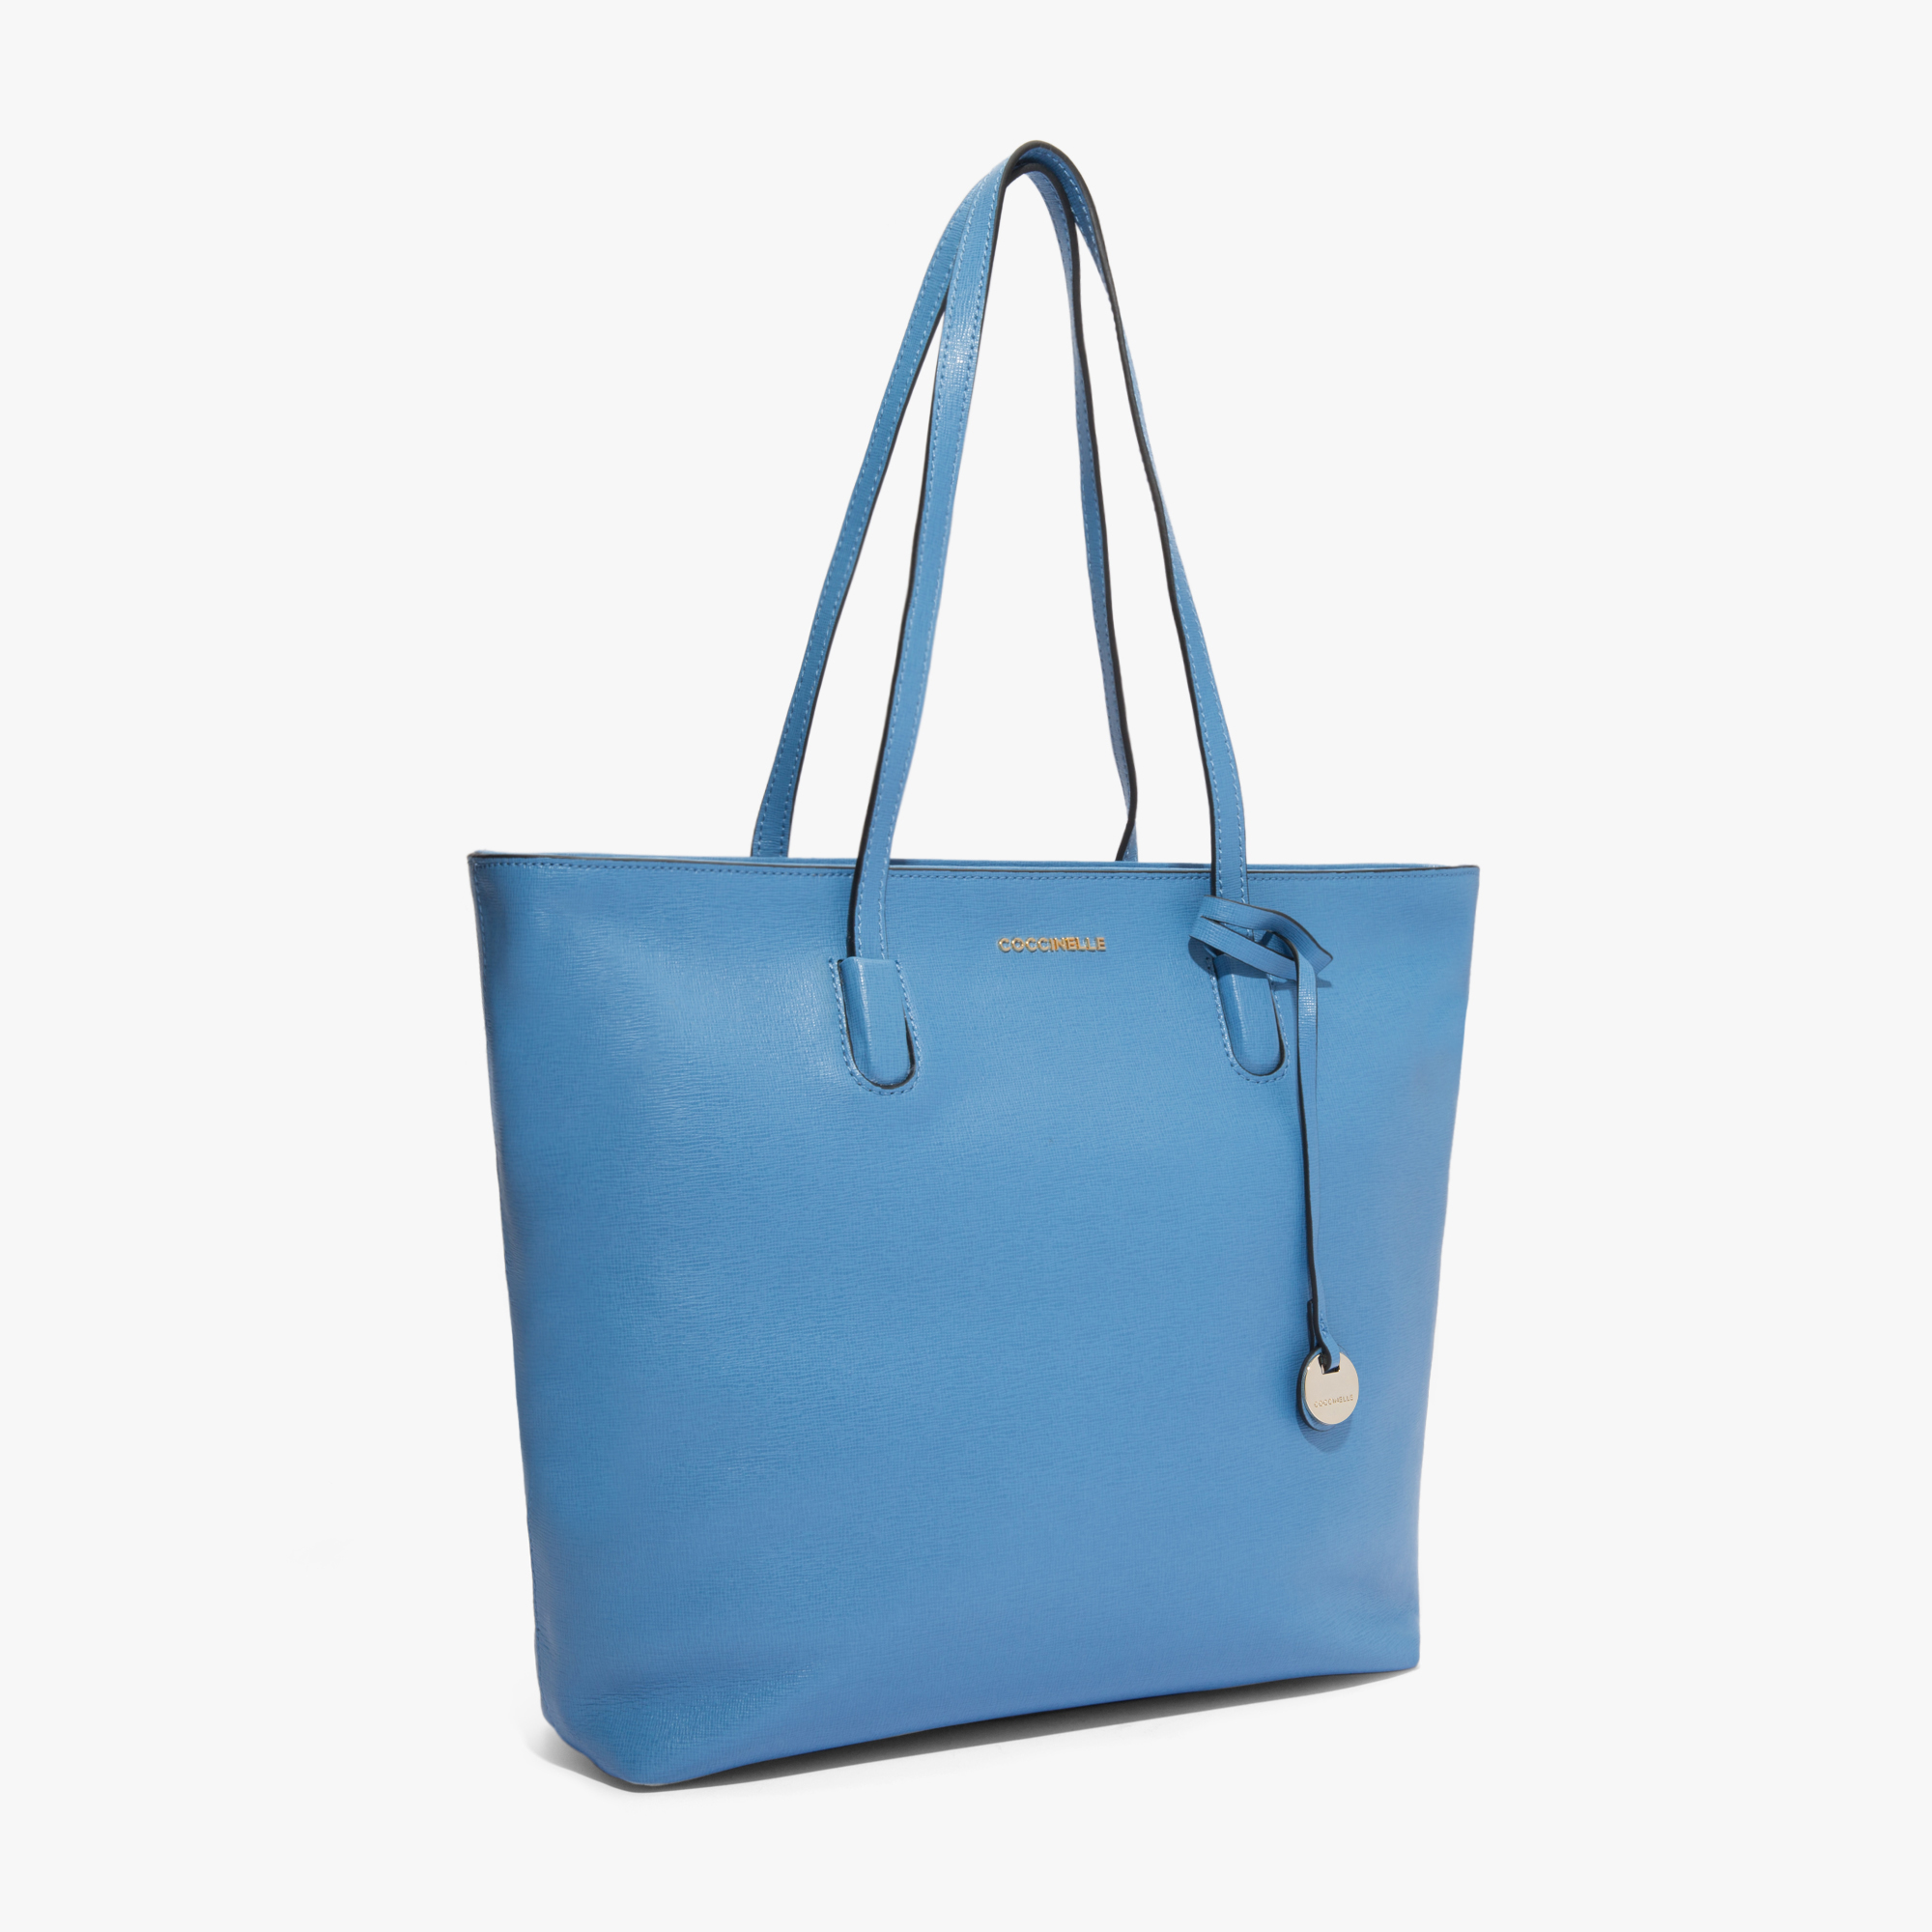 Clementine saffiano leather shopping tote